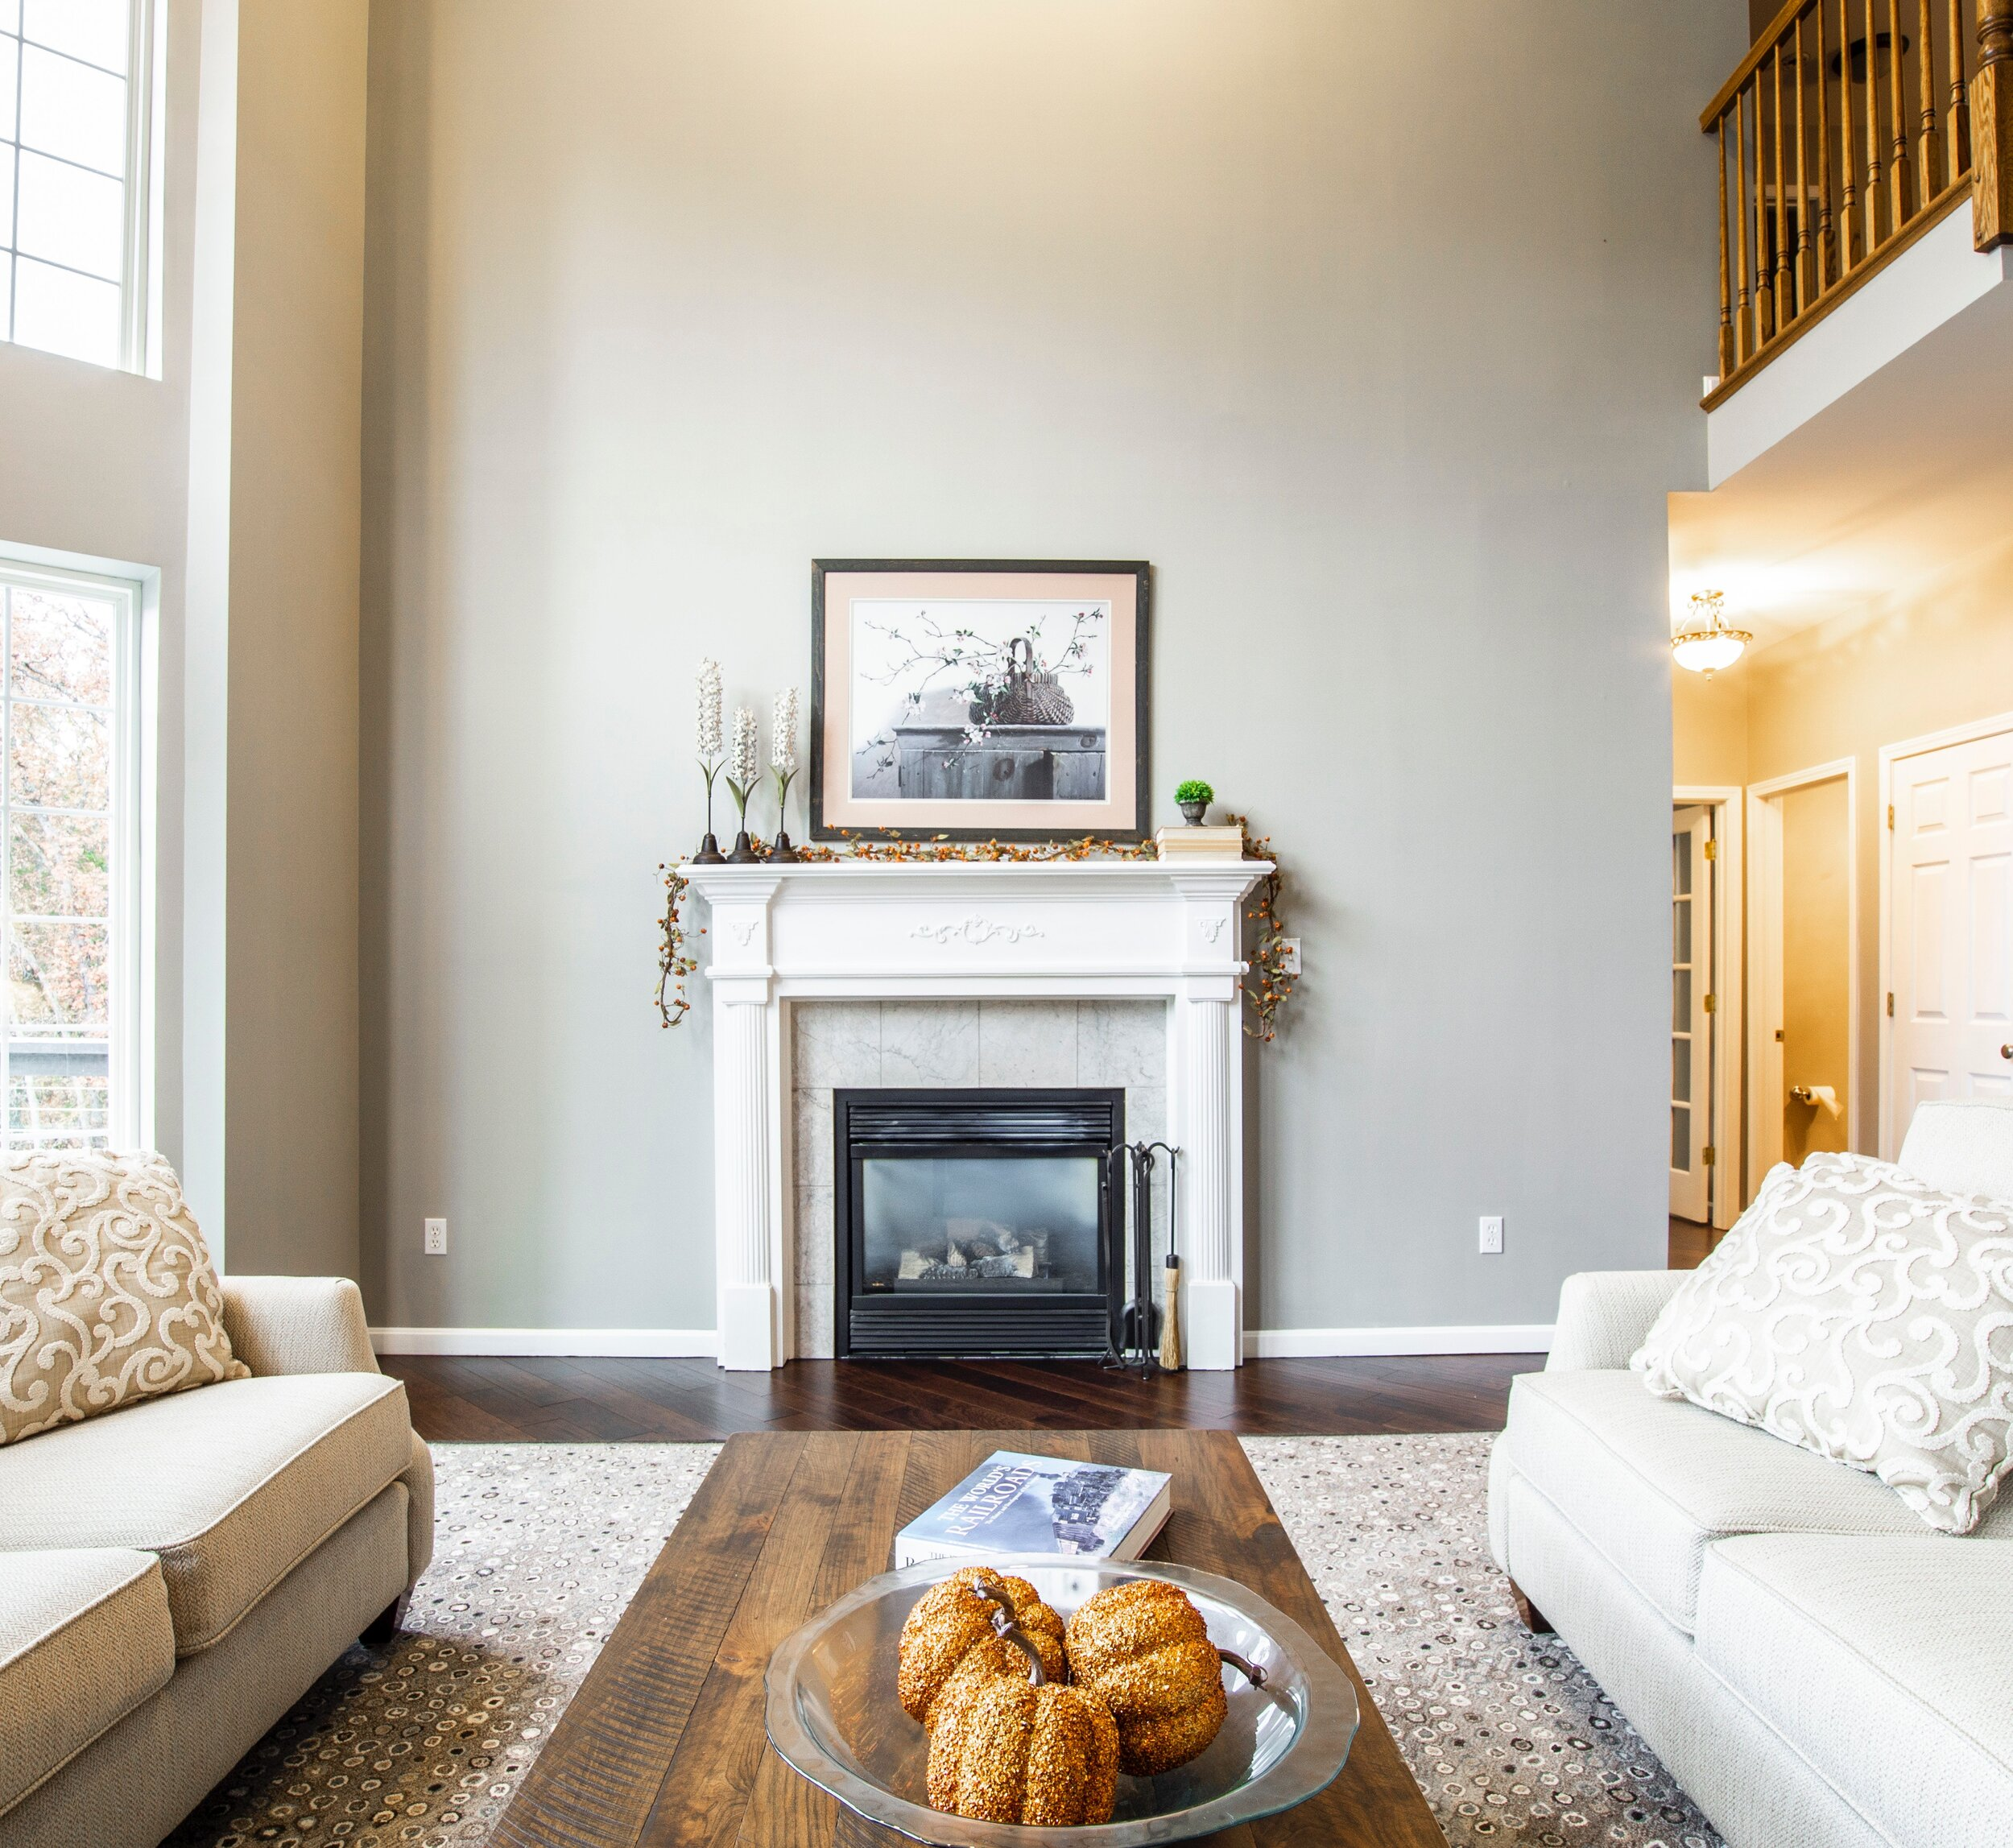 apartment-architecture-fireplace-1608175.jpg